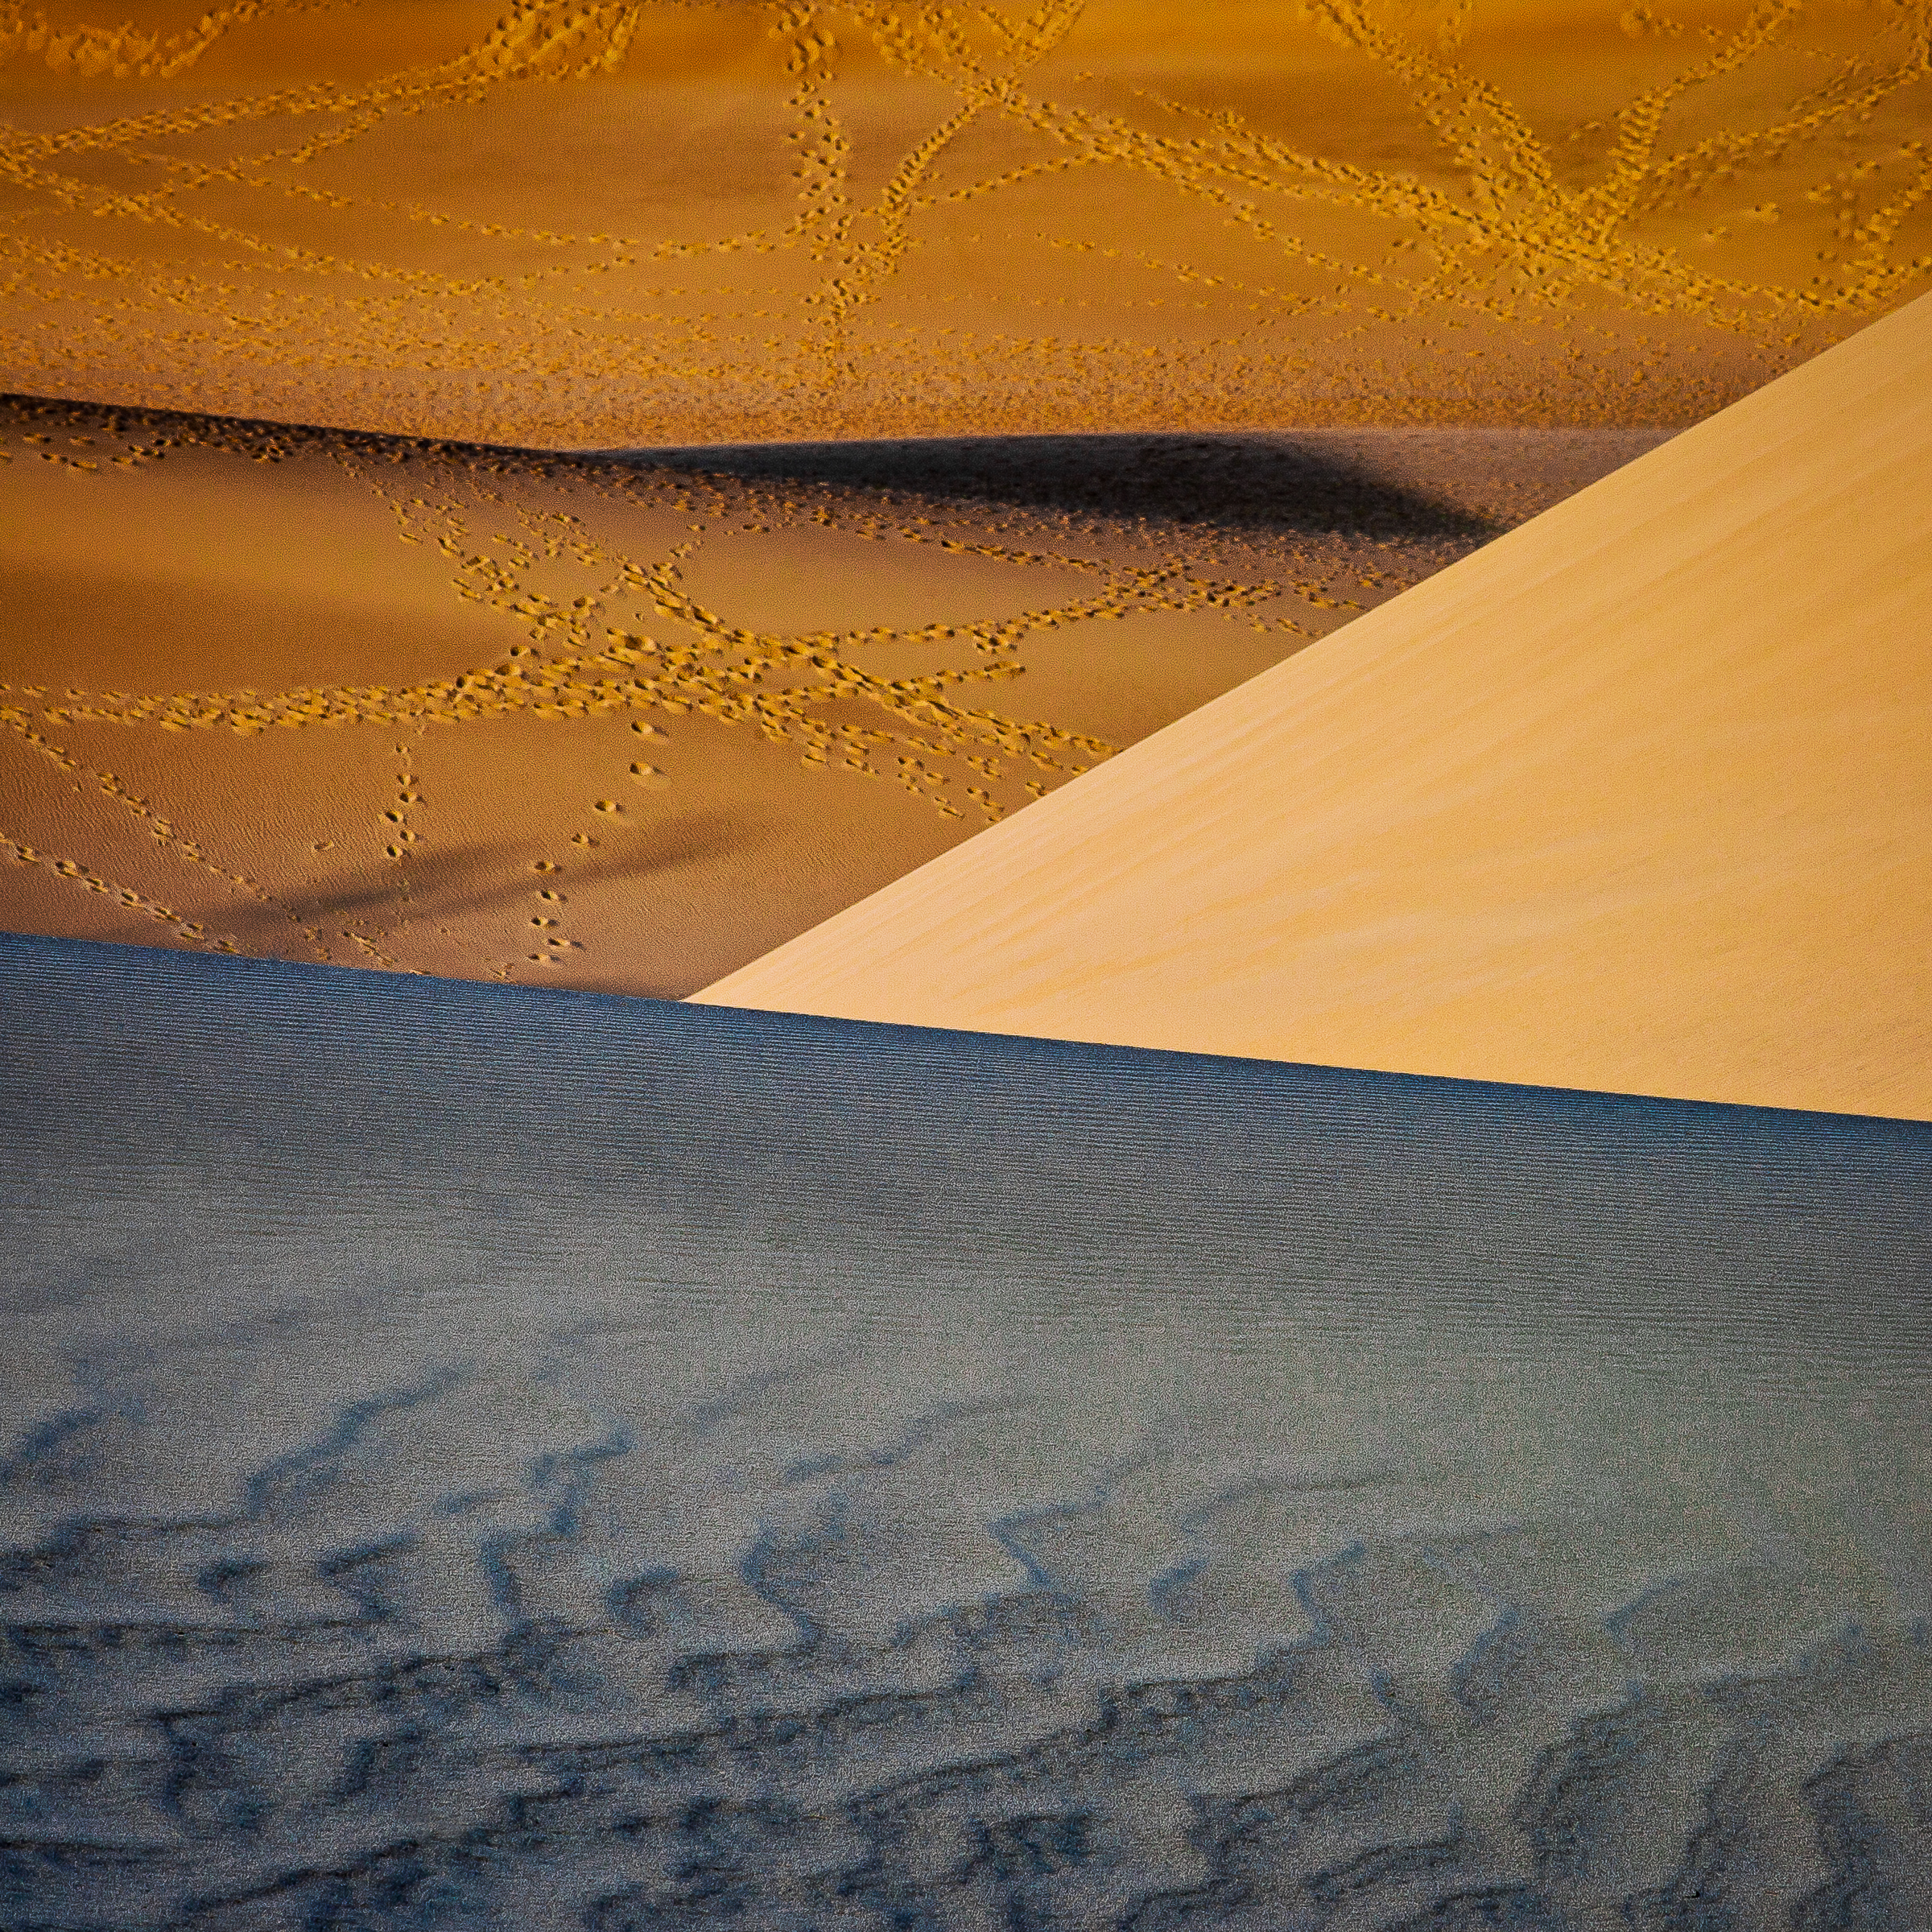 Dunes 4, Light and Shadow